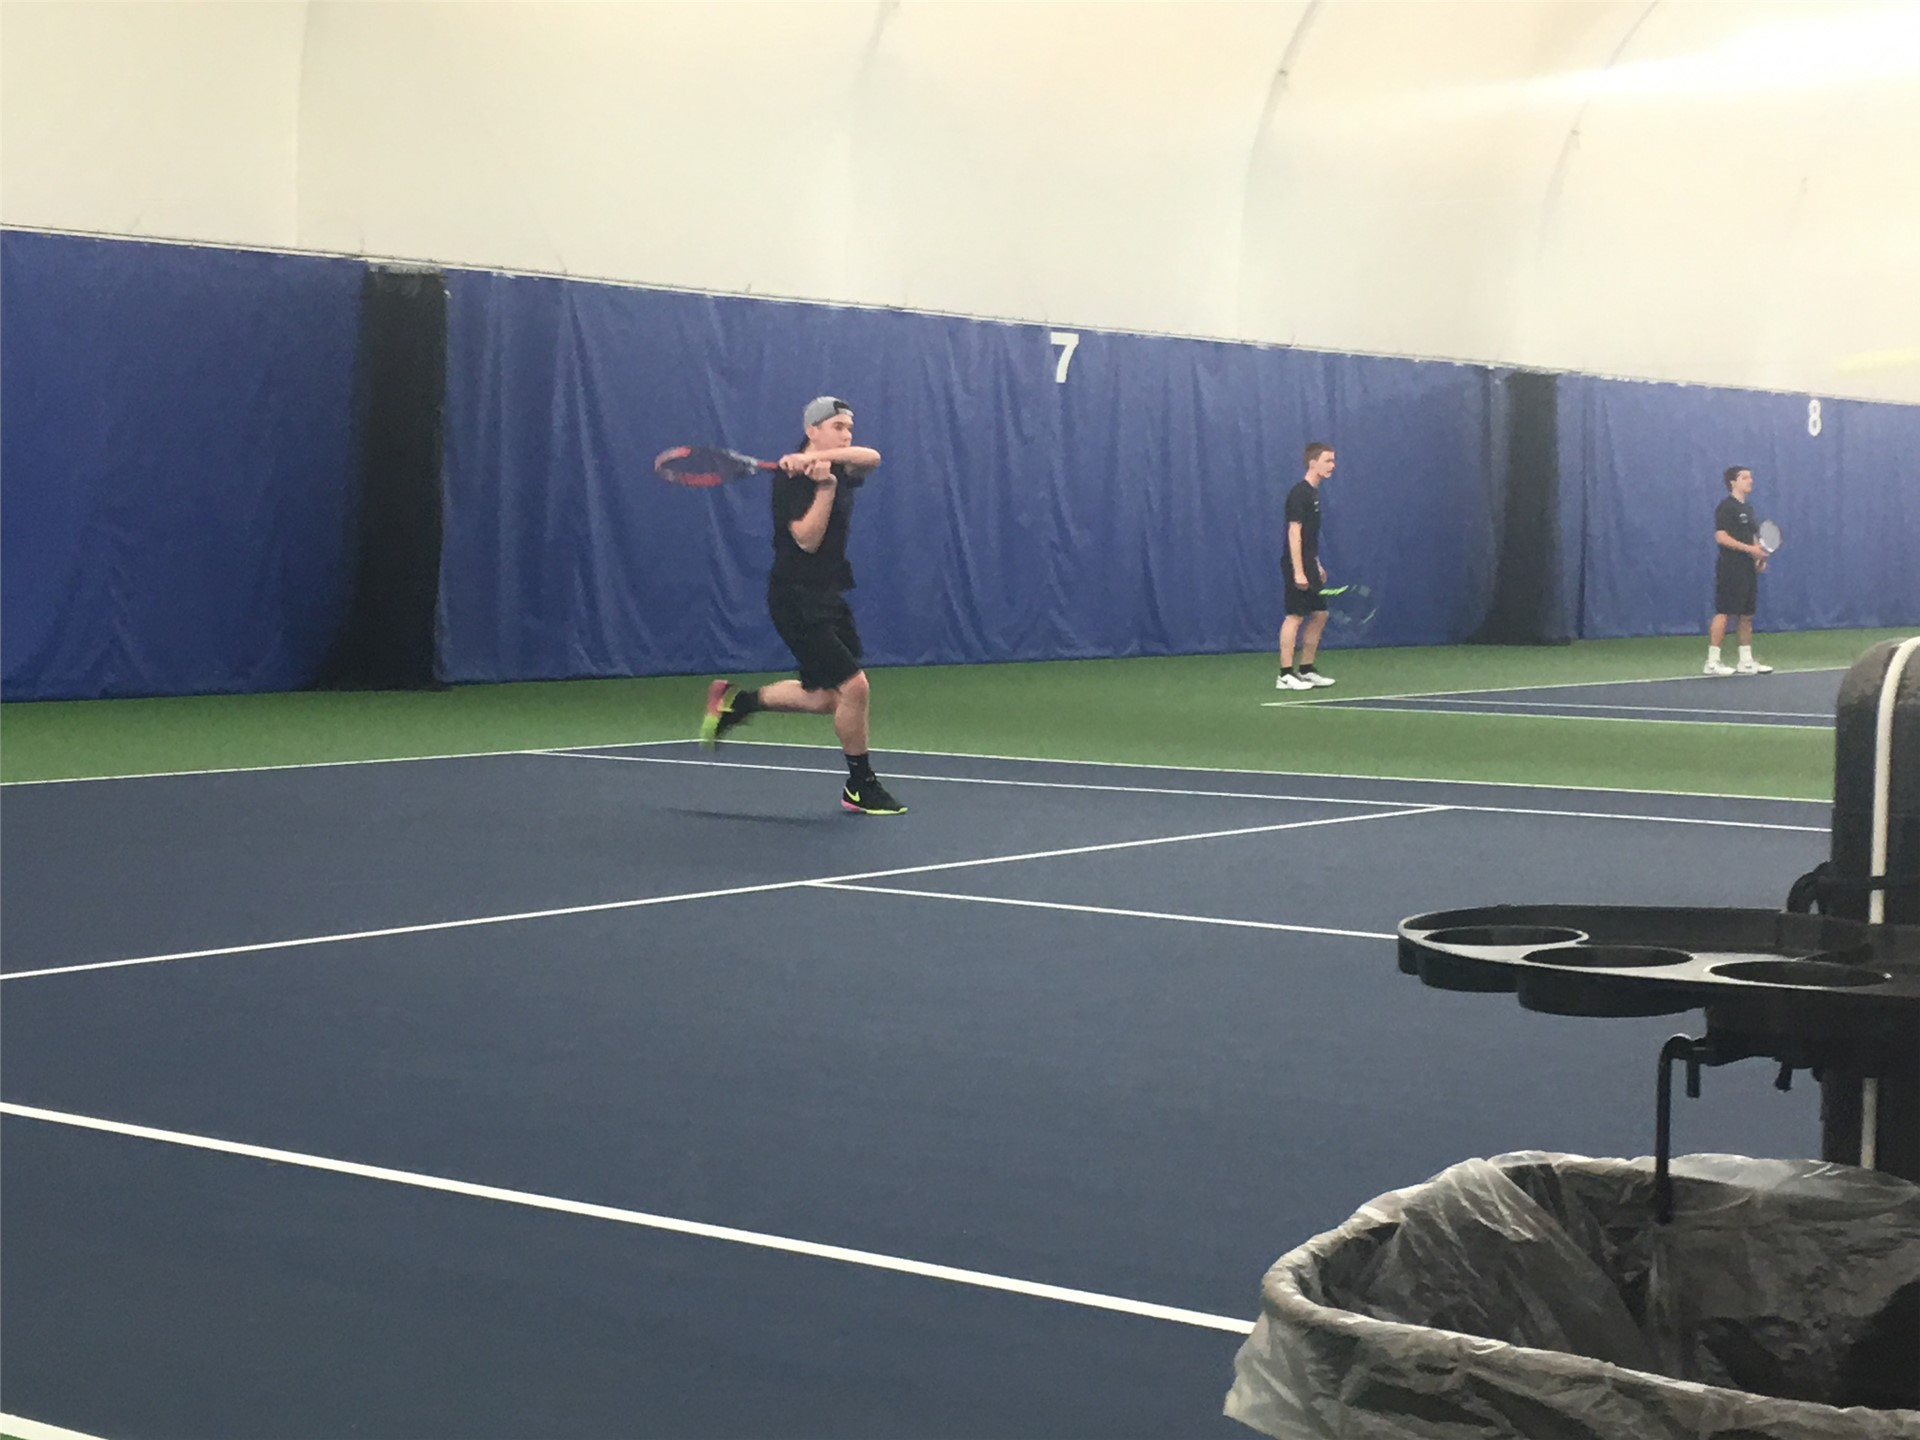 Tennis Player hitting